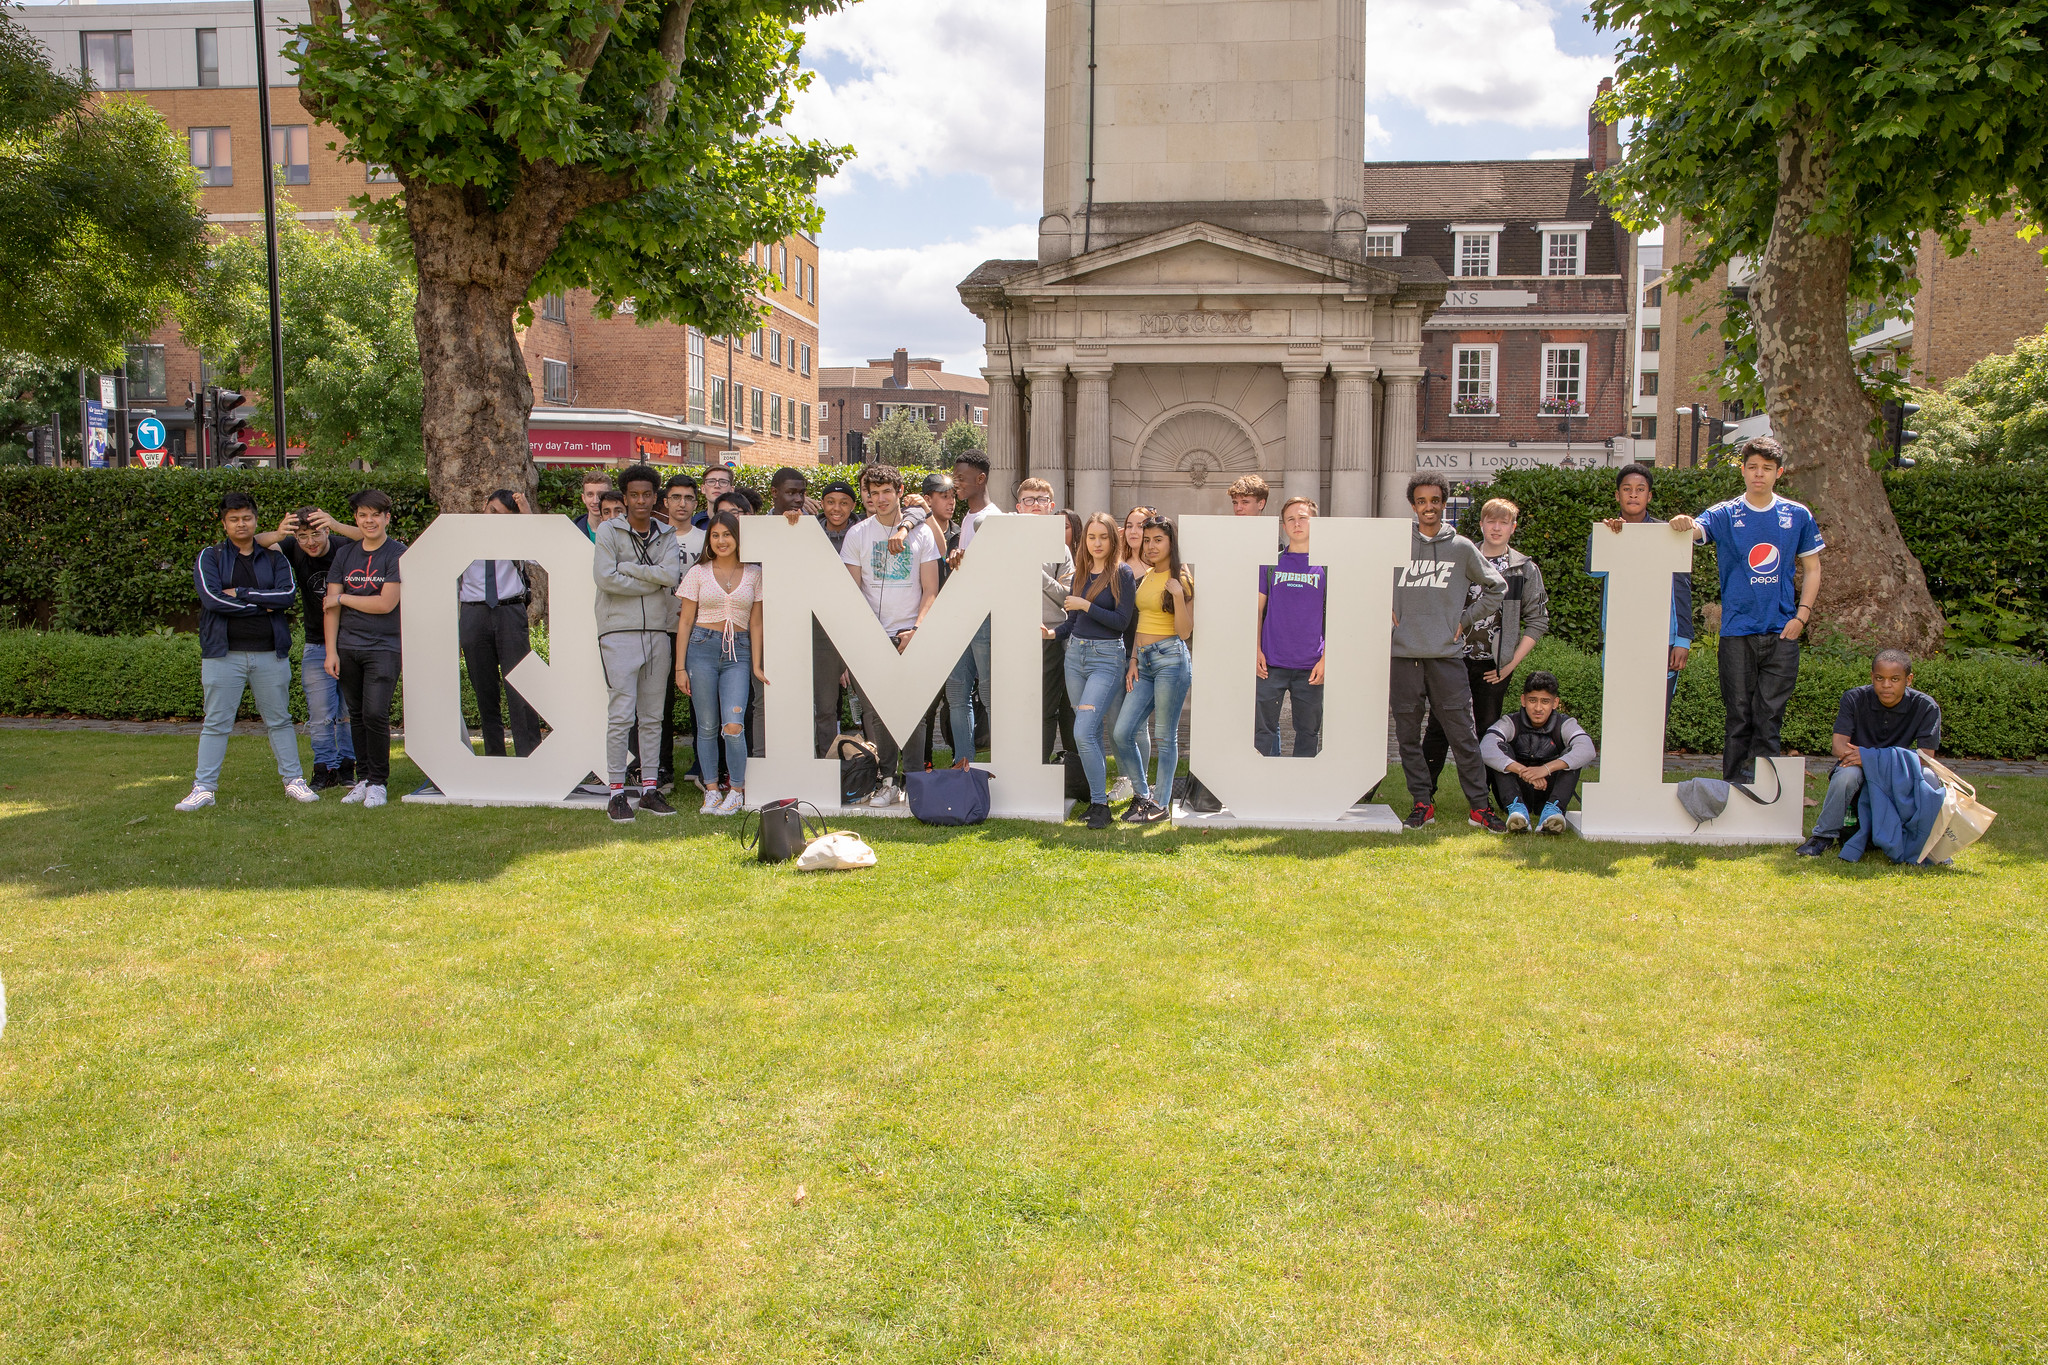 Students on the lawn with QMUL letters